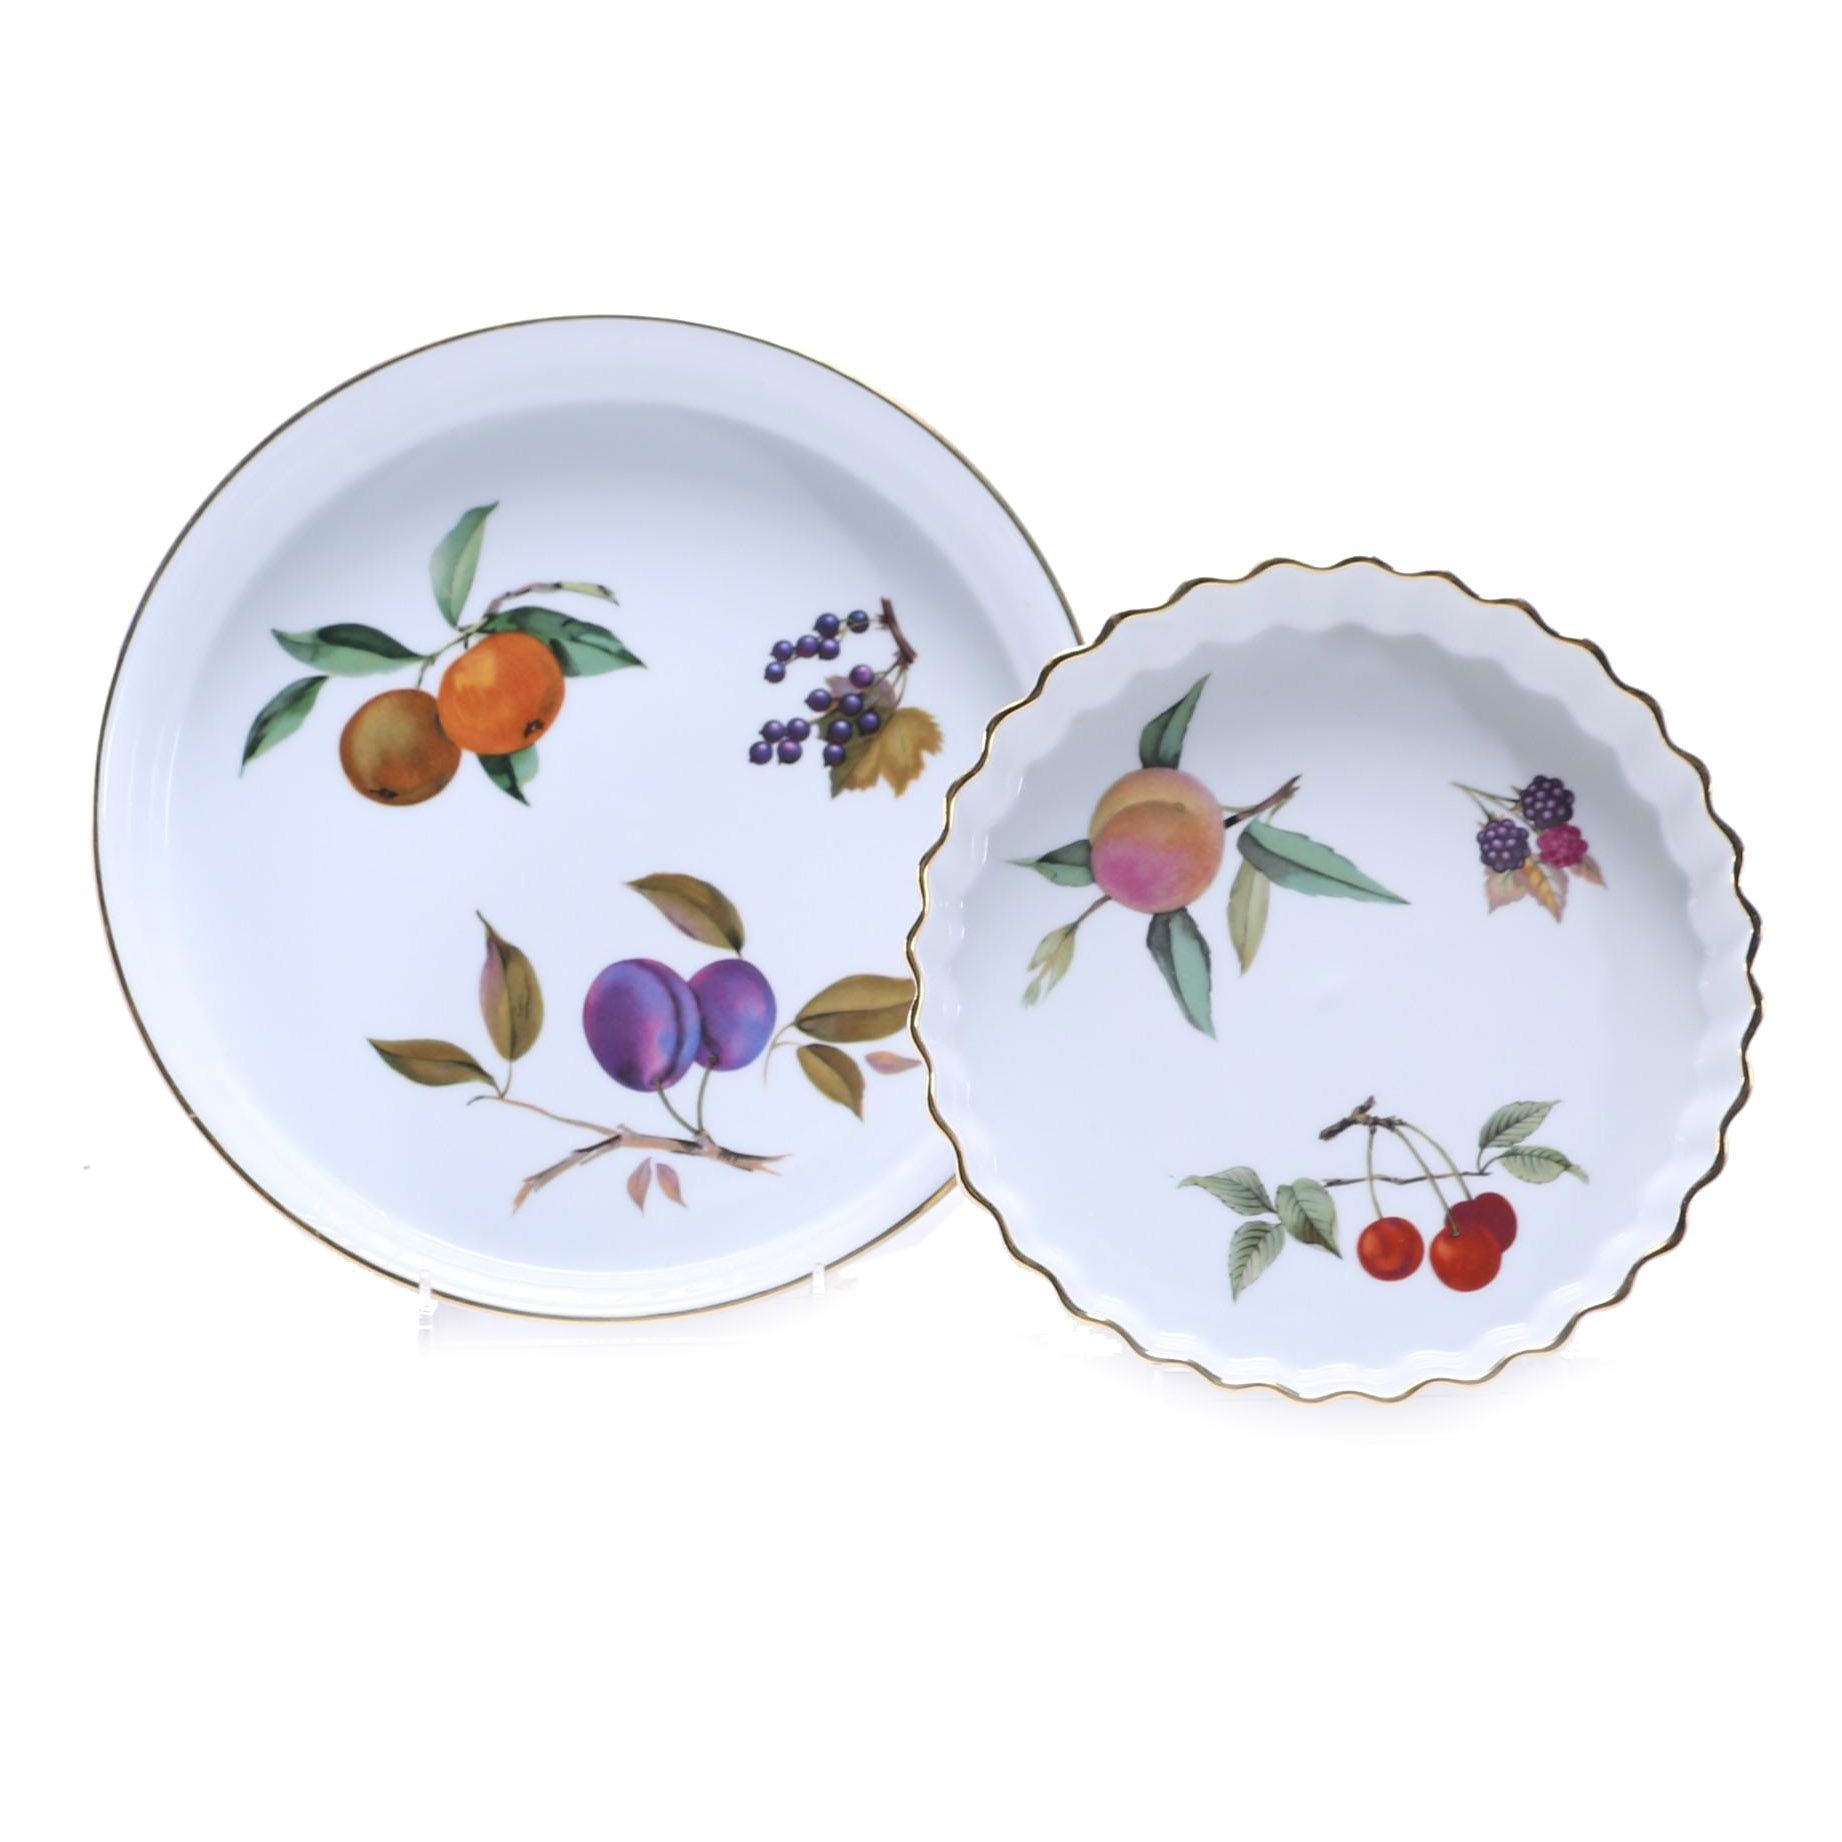 Royal Worcester \ Evesham\  Porcelain Baking Dishes ...  sc 1 st  EBTH.com & Royal Worcester \